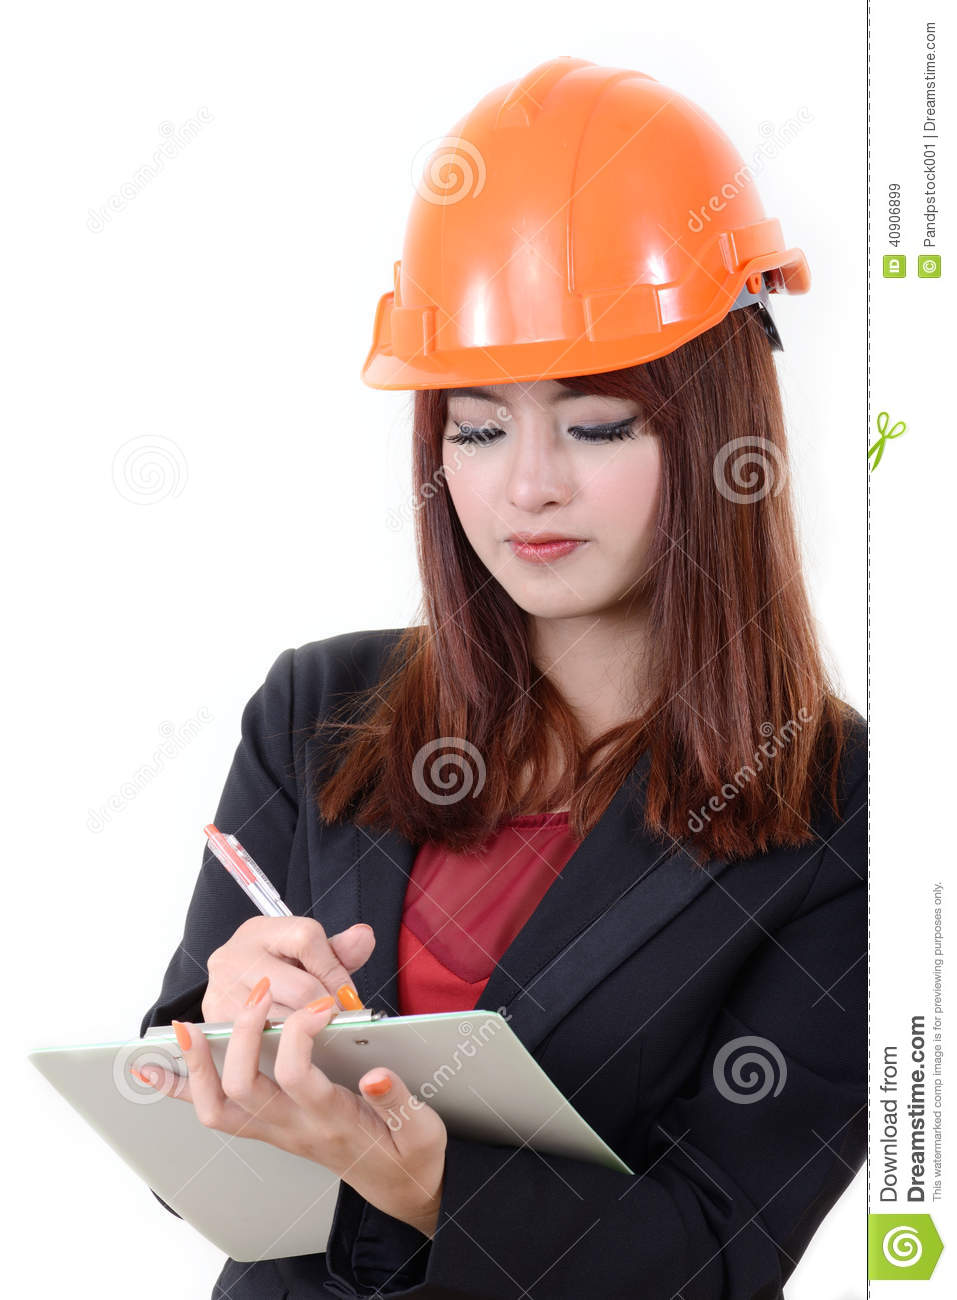 women and engineering essay